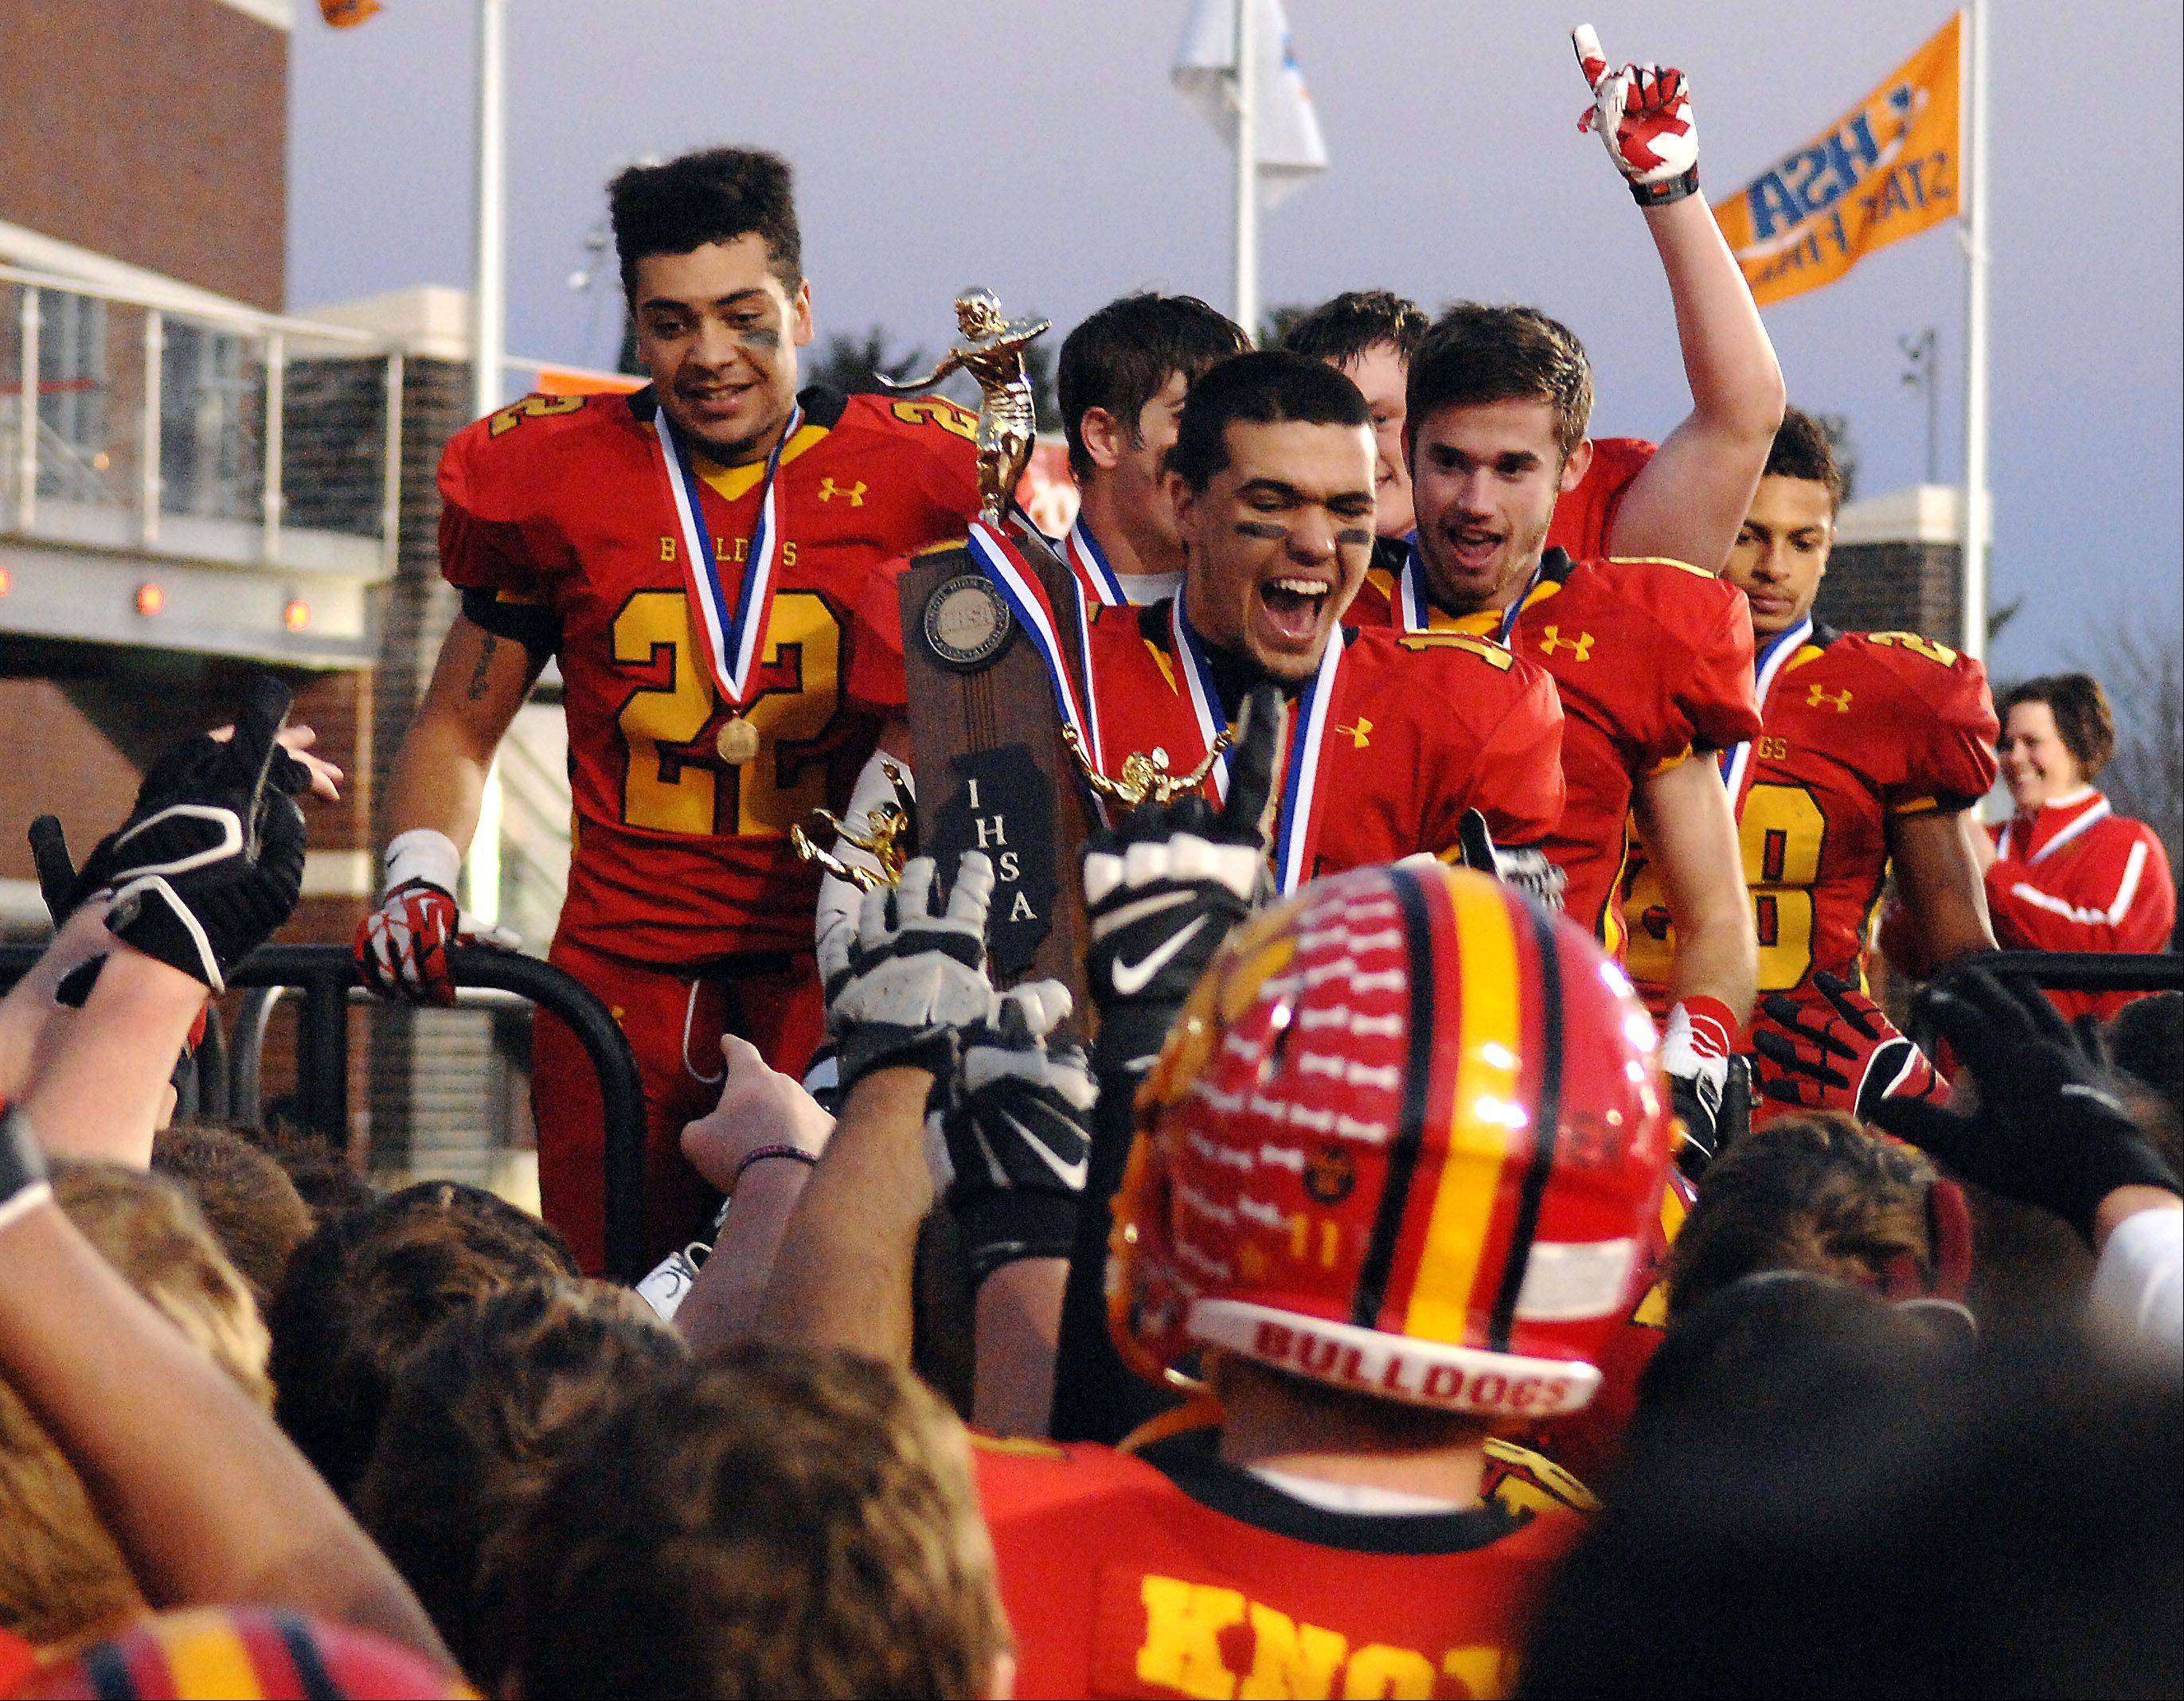 Batavia's Micah Coffey (15) brings the 6A championship trophy to his teammates after beating Richards Saturday in DeKalb.